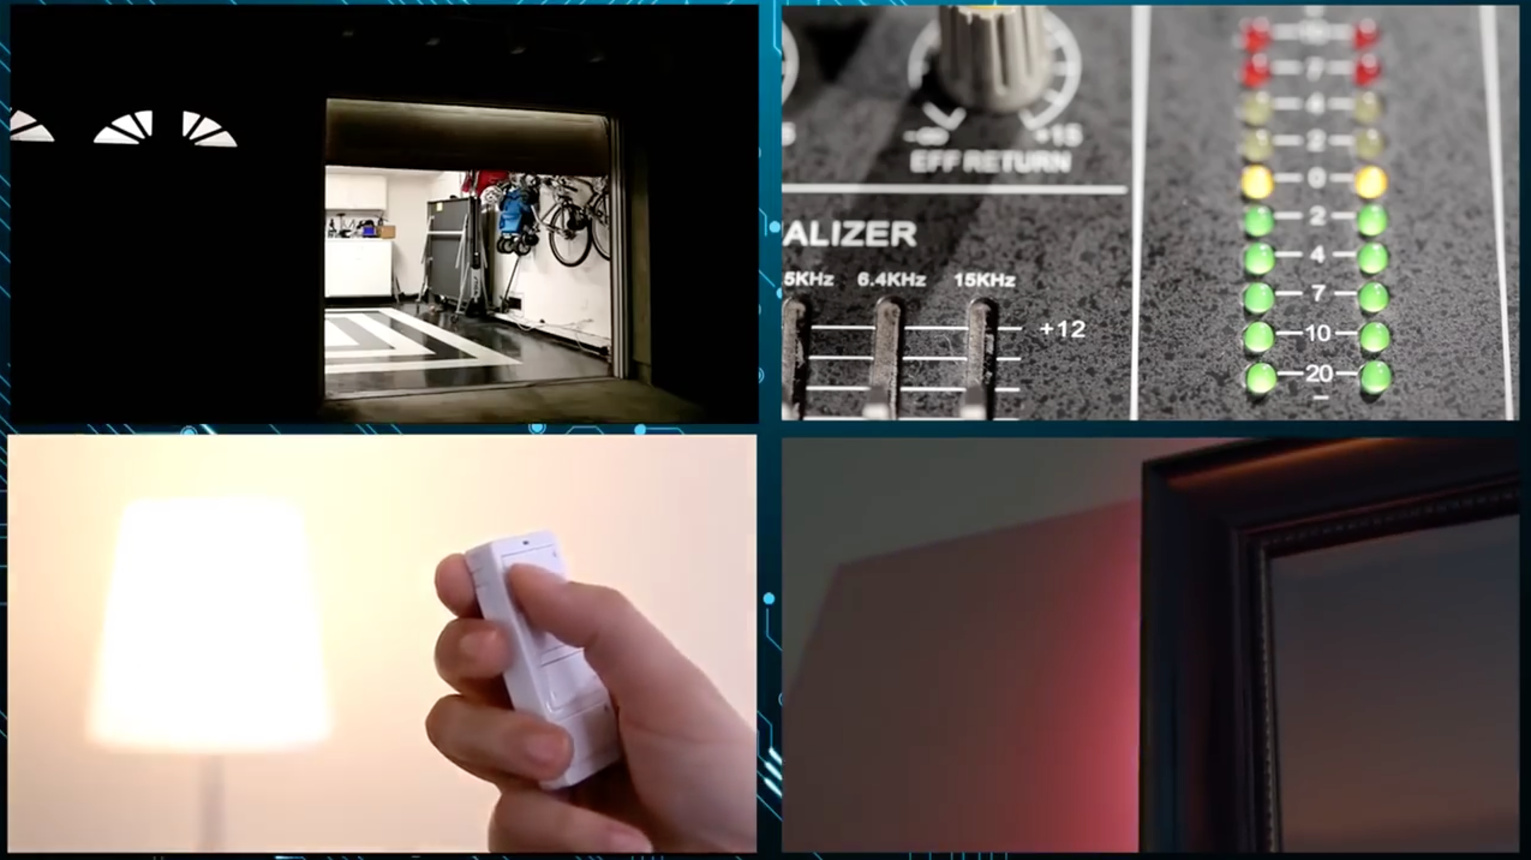 The Future of Home & Factory Automation Systems: Mouser's Innovation Spotlight with Grant Imahara